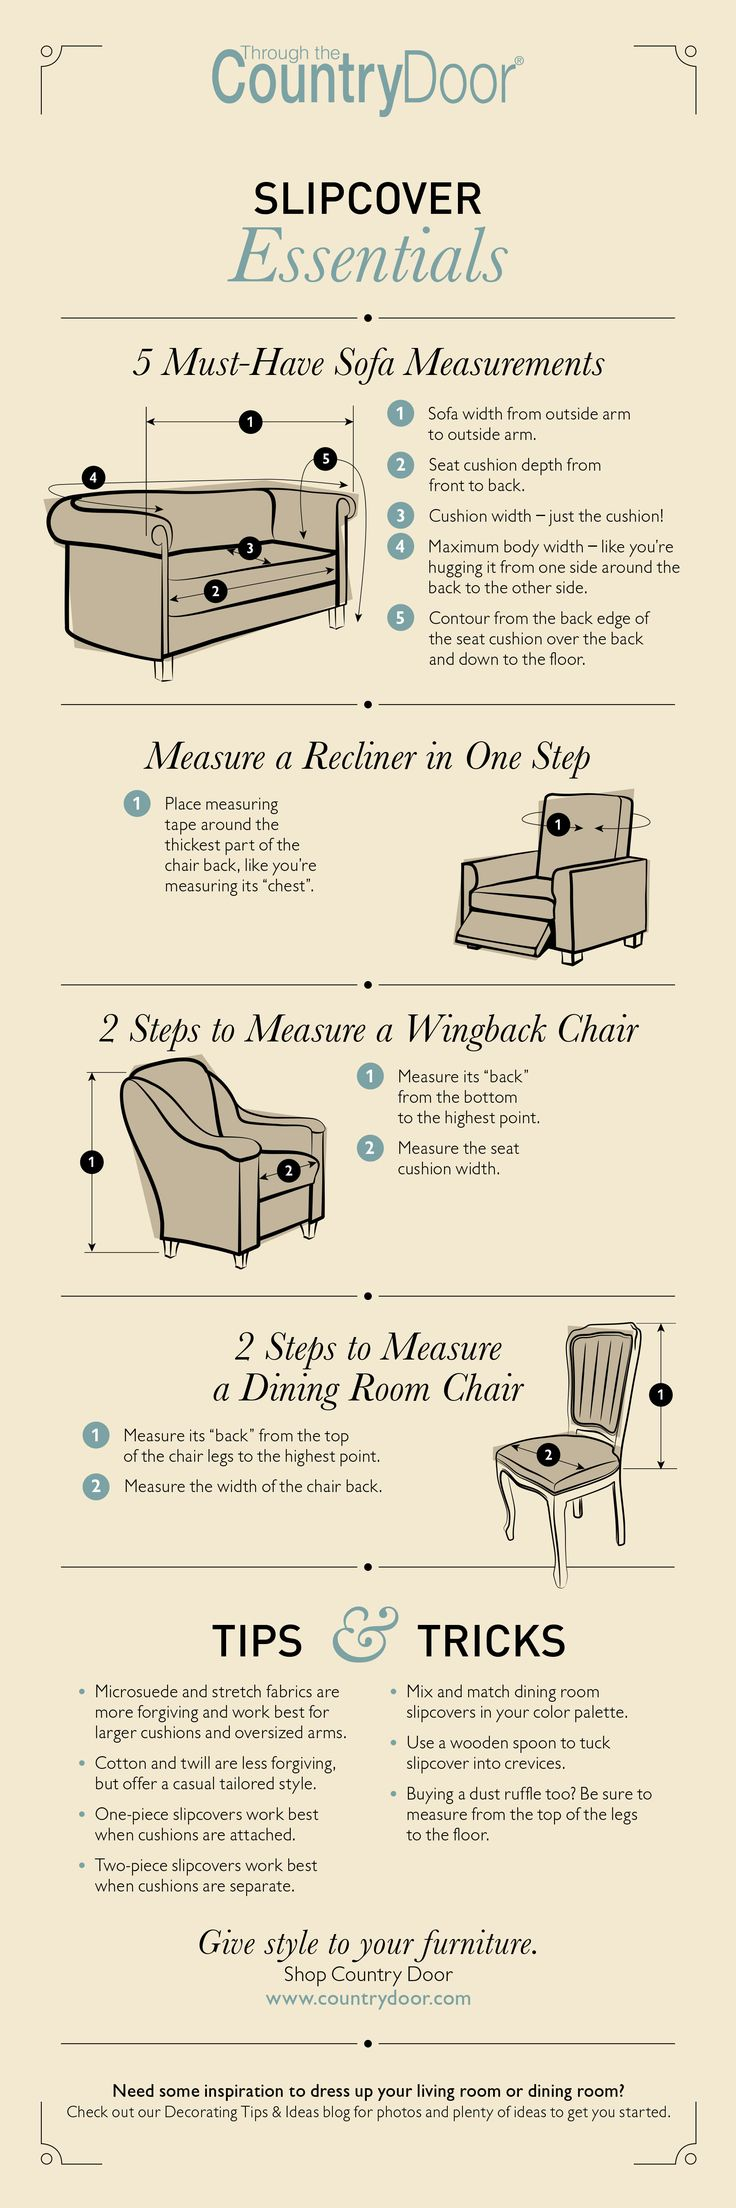 Slipcover Buying Guide: With a few simple measurements, slipcovers give your old furniture a new look without the expense of having to buy new furniture. Find out how to measure your furniture for the perfect fit.